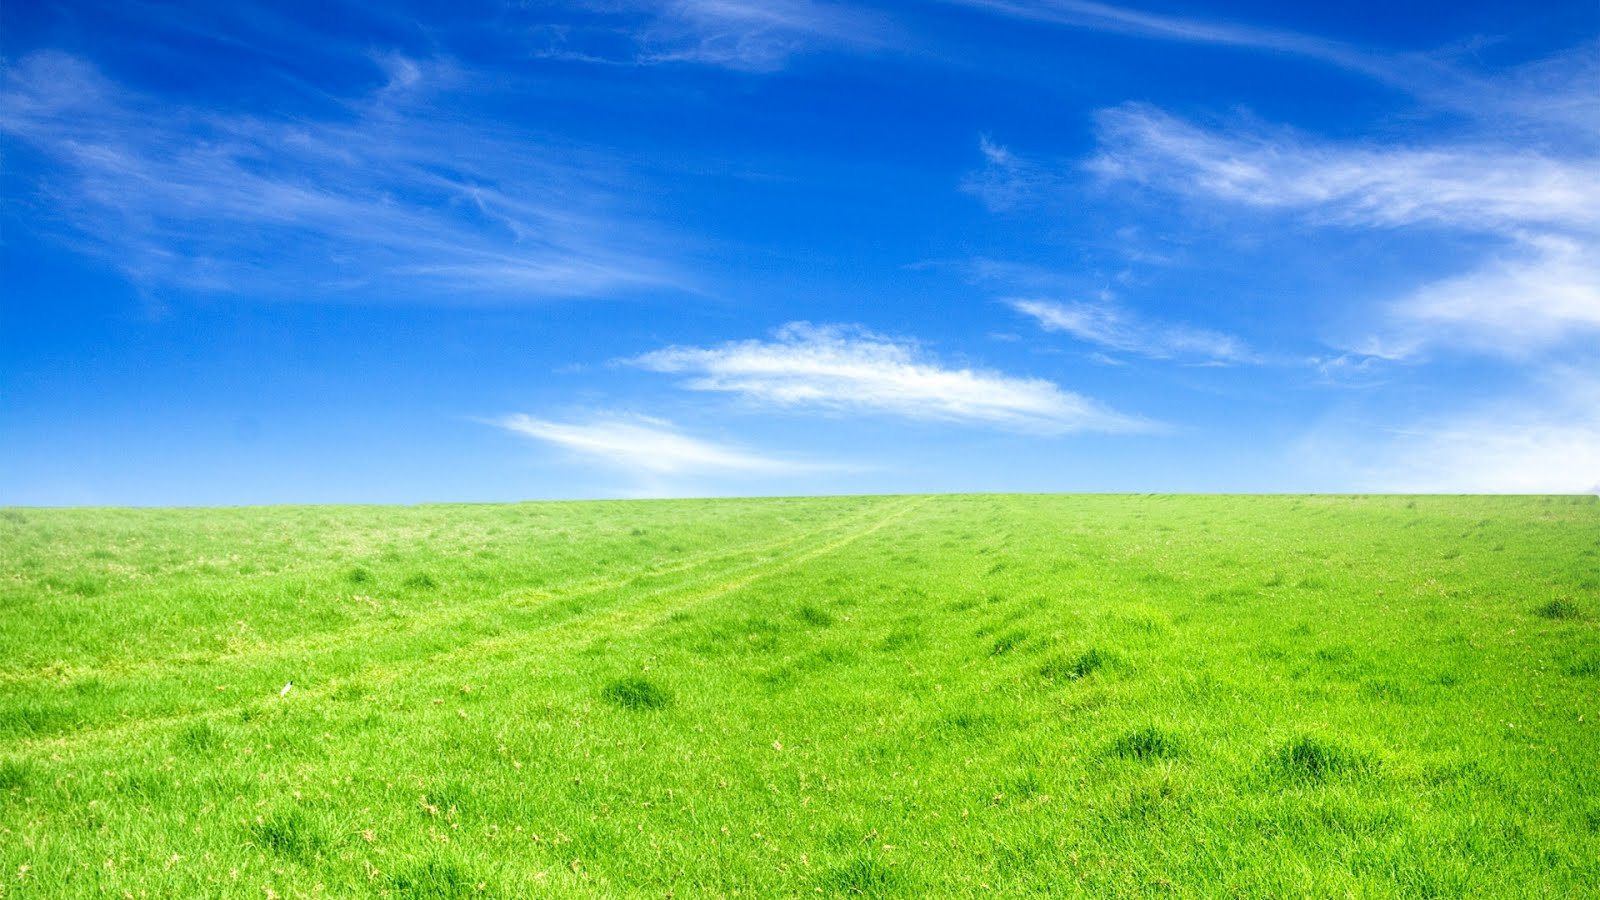 grass wallpaper windows - hd desktop wallpapers | 4k hd